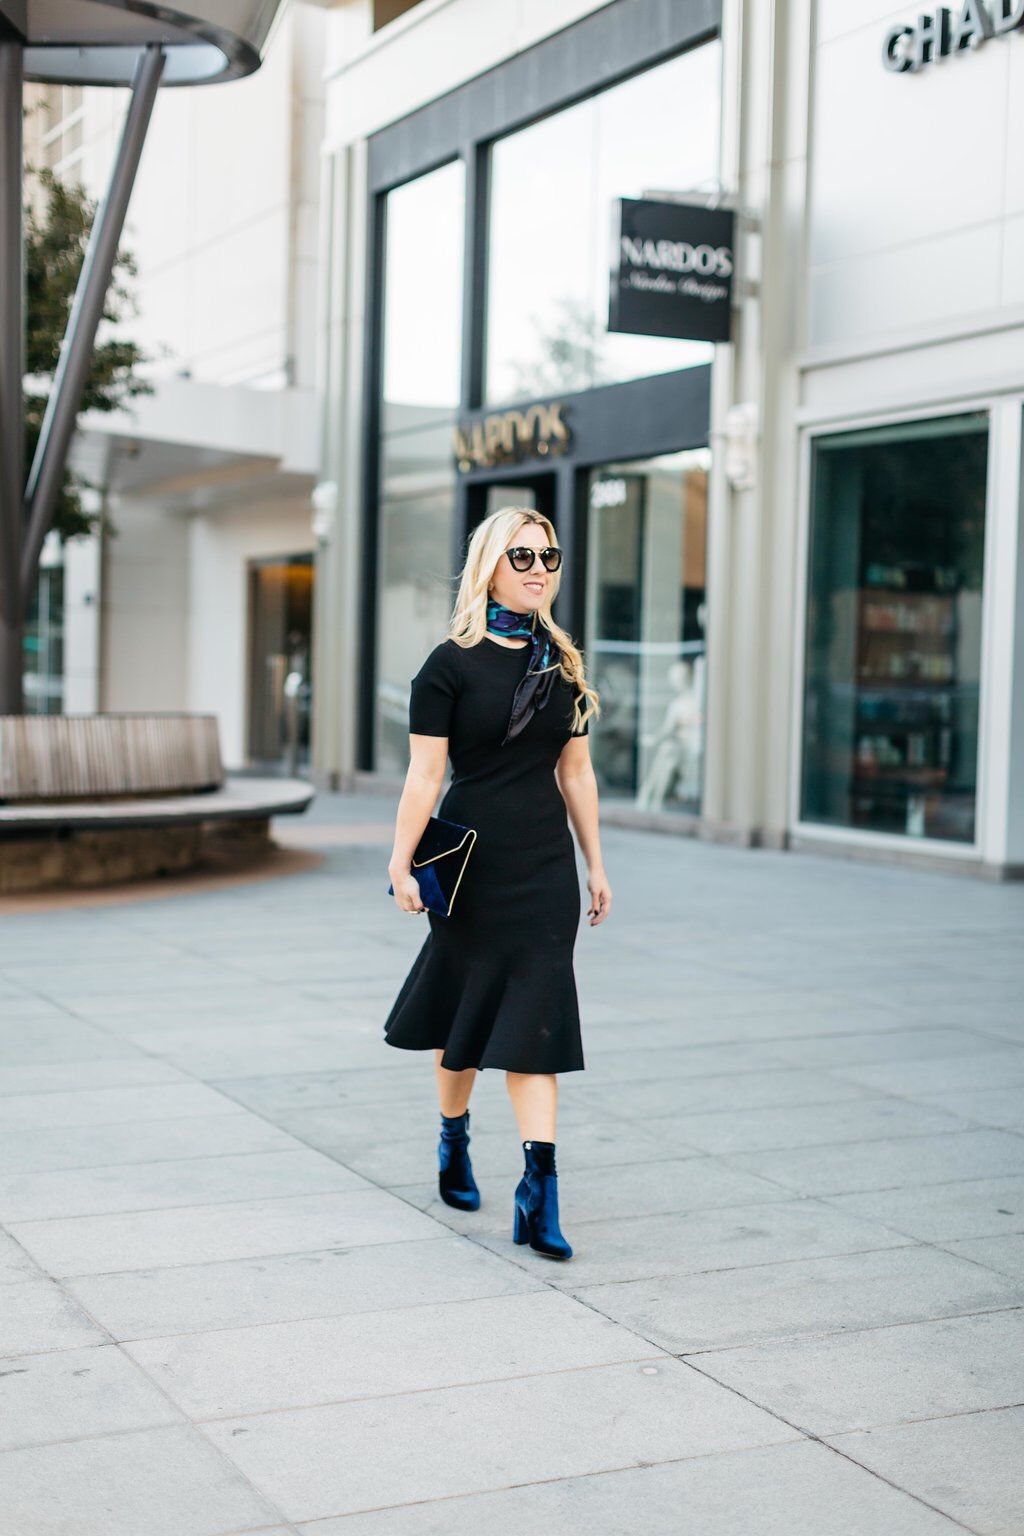 Styling A LBD | The Darling Petite Diva | Nicole Kirk